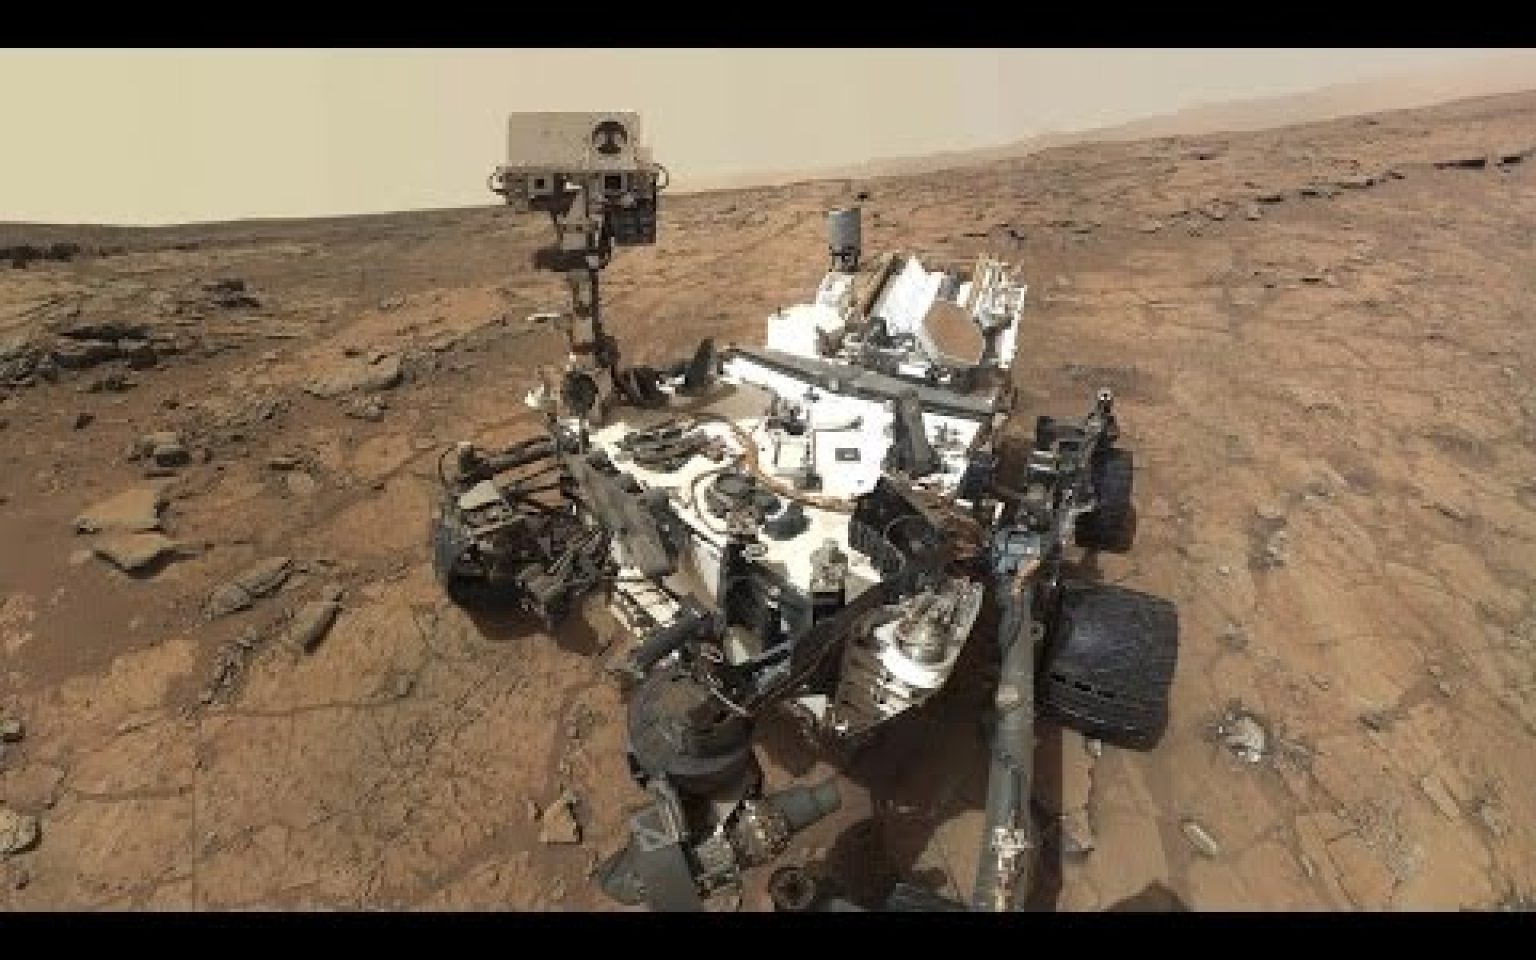 NASA's Mars rover detected a methane spike in Mars